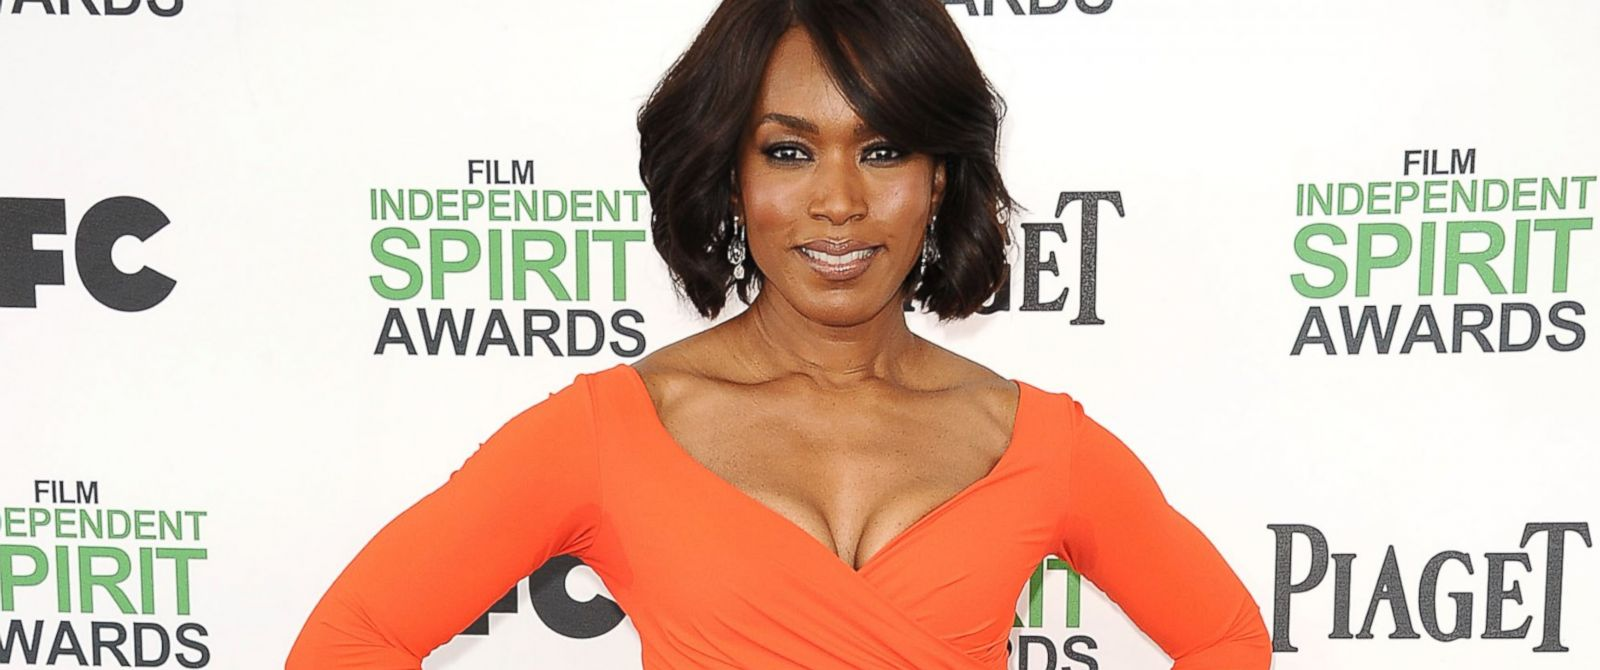 PHOTO: Actress Angela Bassett attends the 2014 Film Independent Spirit Awards, March 1, 2014 in Santa Monica, California.